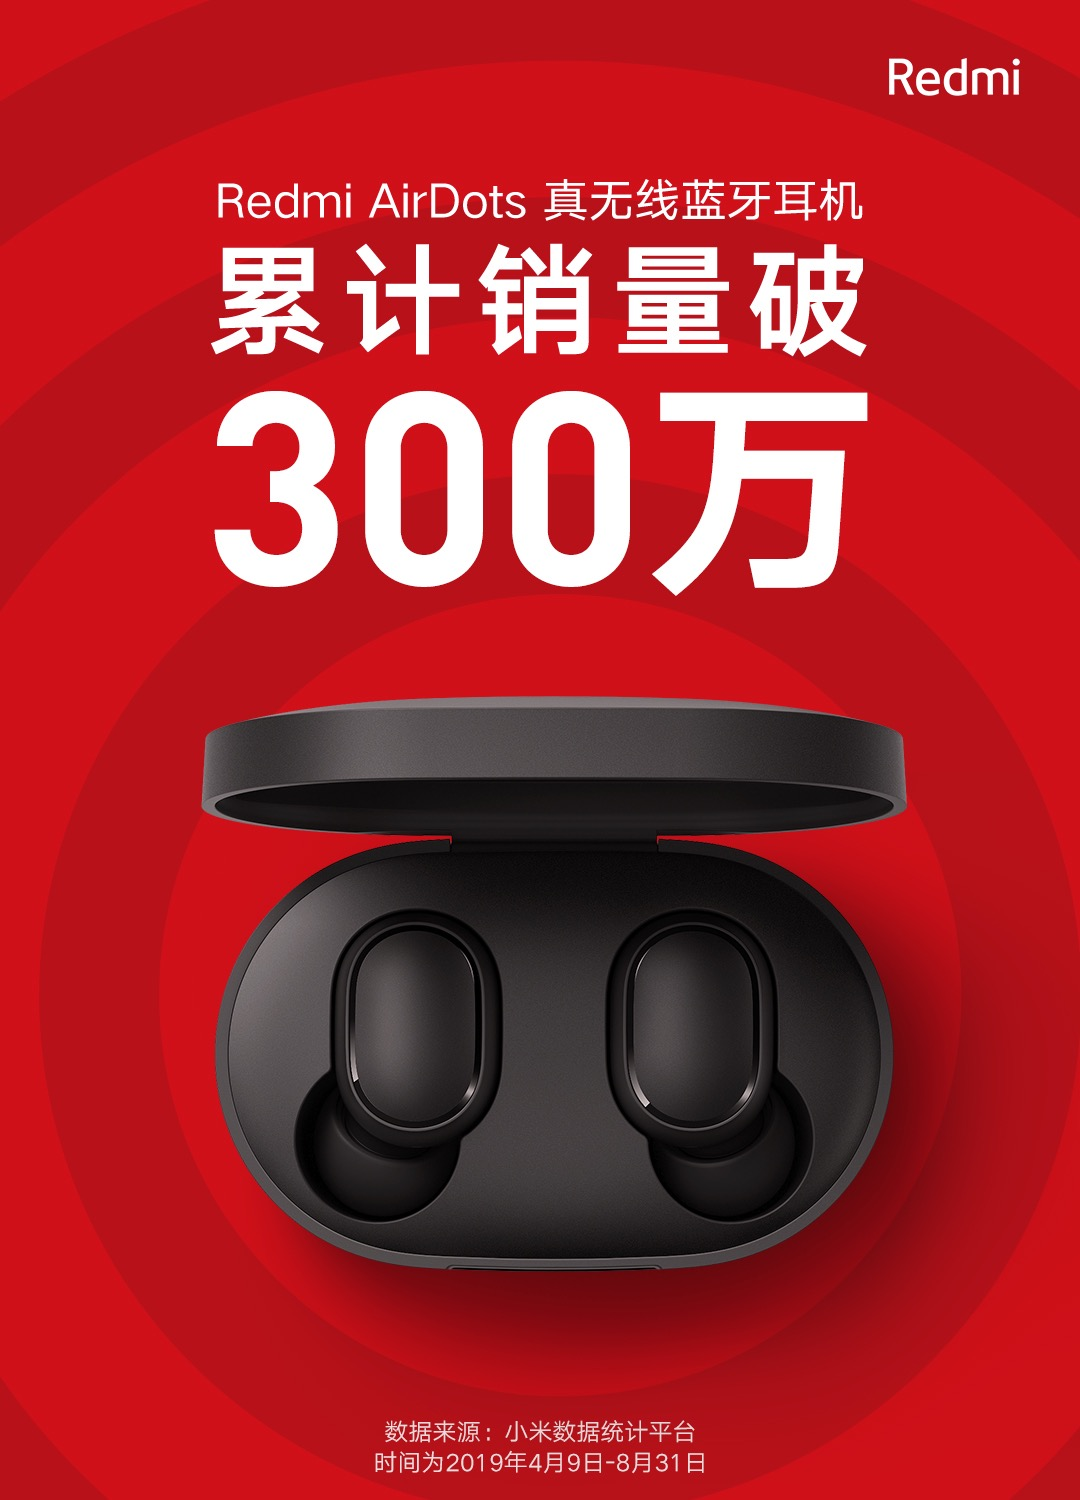 The Redmi AirDots are a success and get 3 million units sold in 5 months. Xiaomi Addicted News